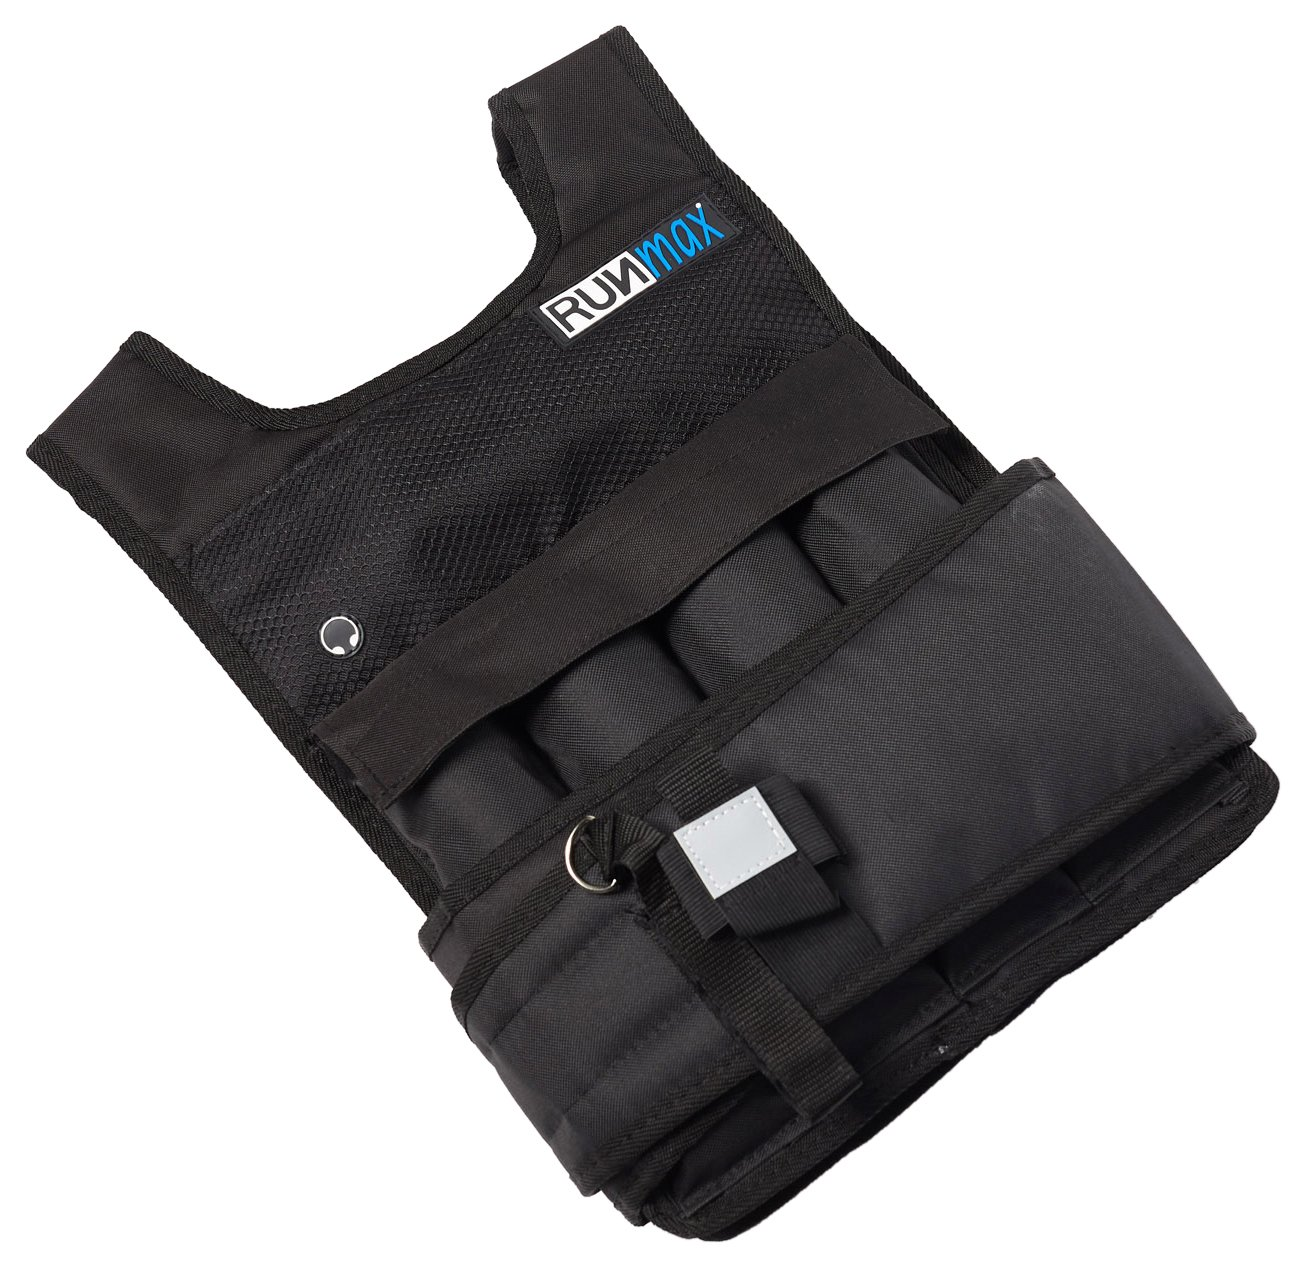 RUNmax RUNFast RM_20 Pro Weighted Vest, 20 lb. by RUNmax (Image #1)